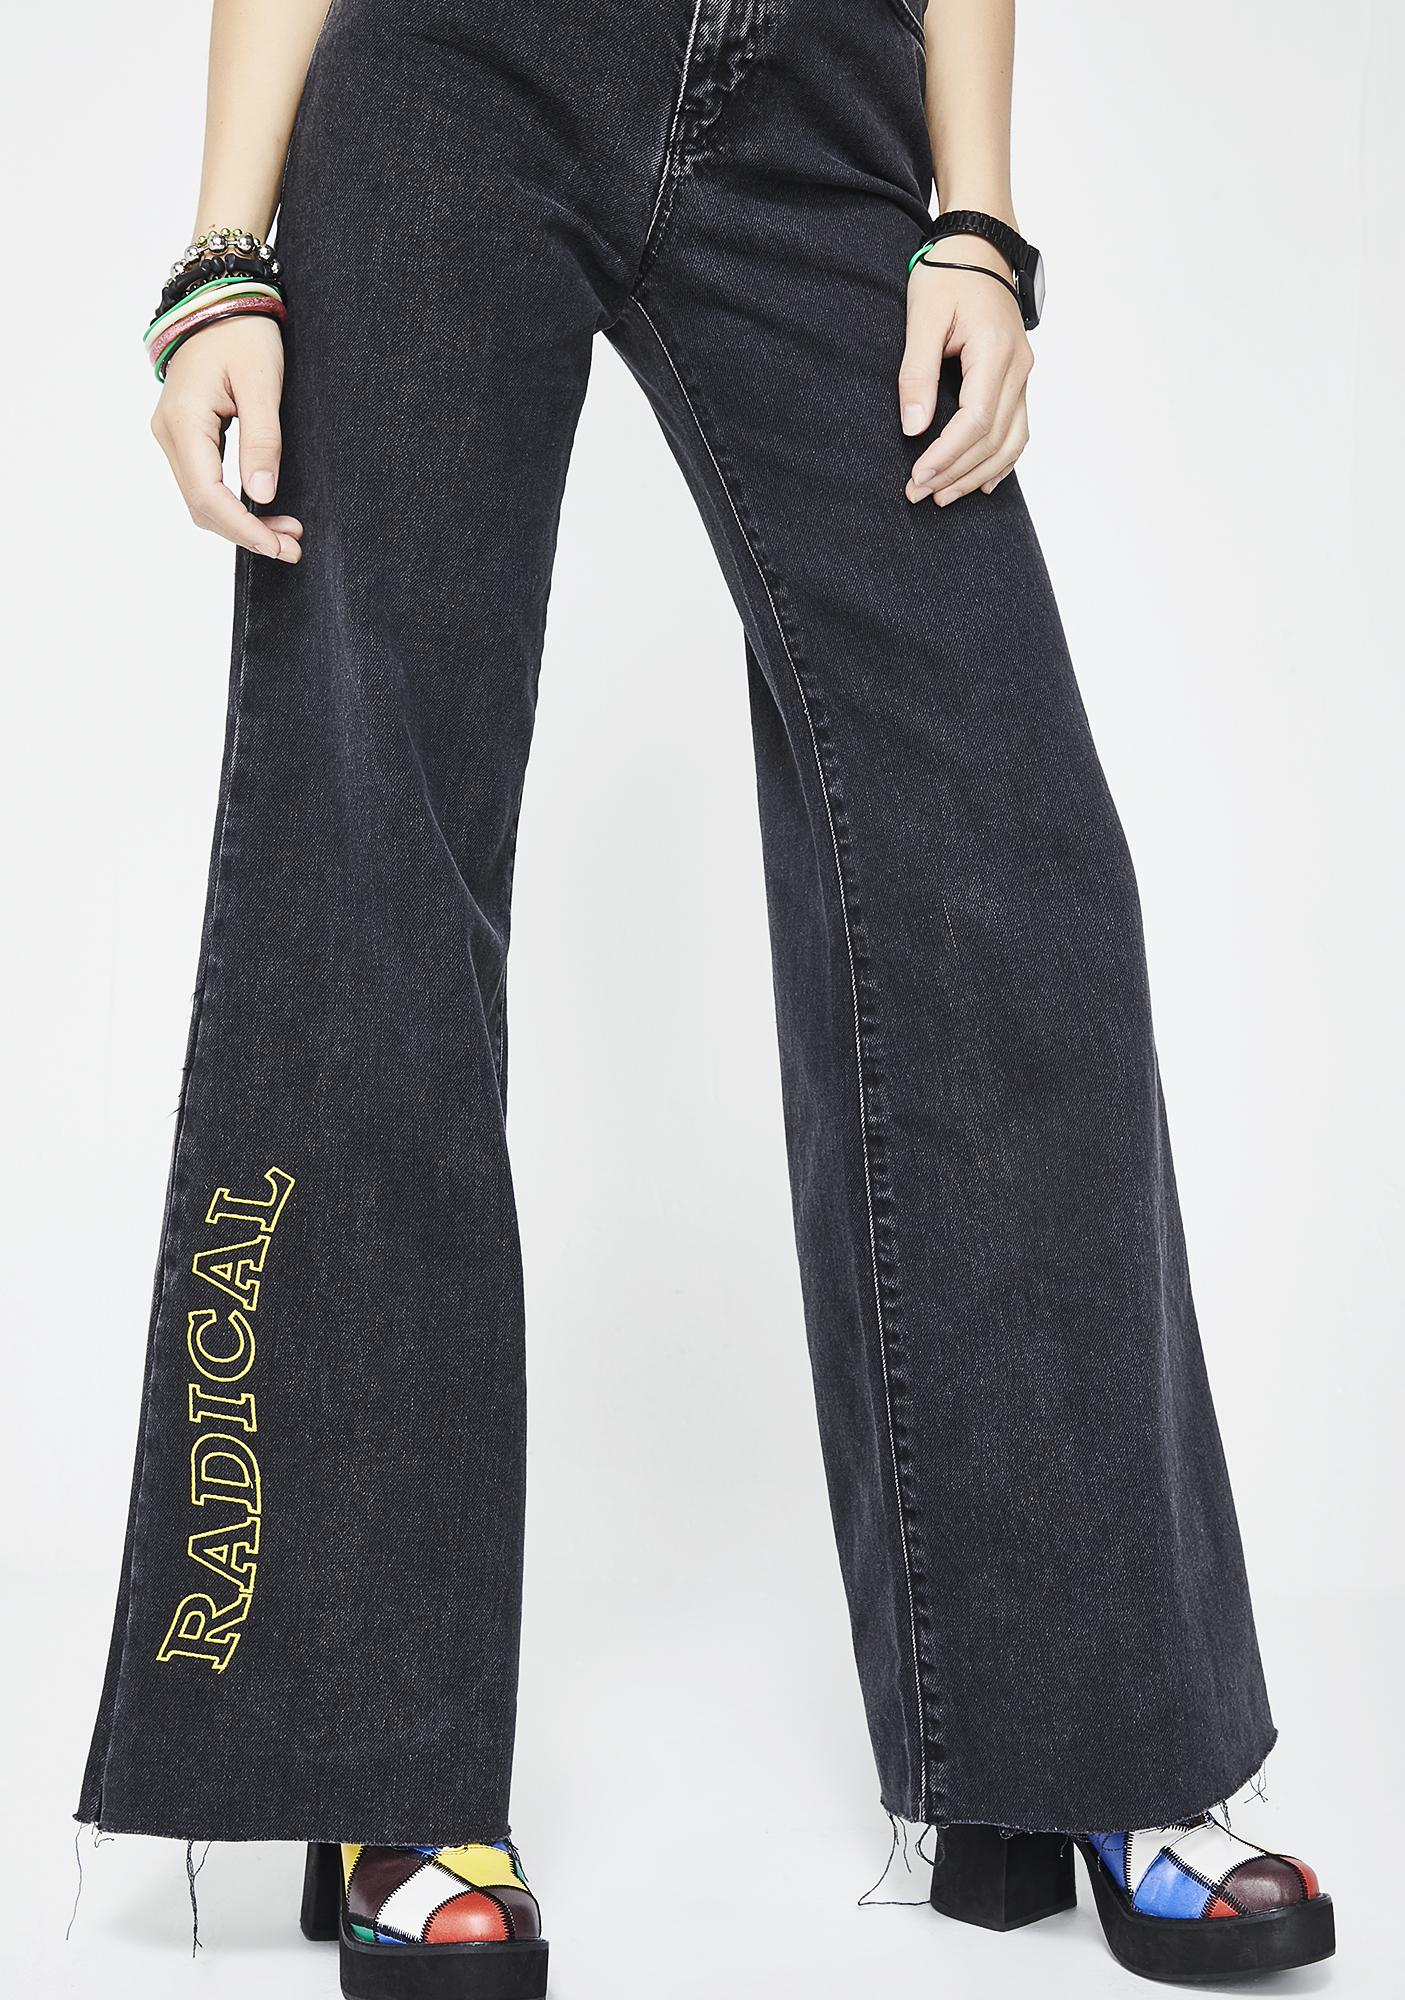 The Ragged Priest Radical Jeans